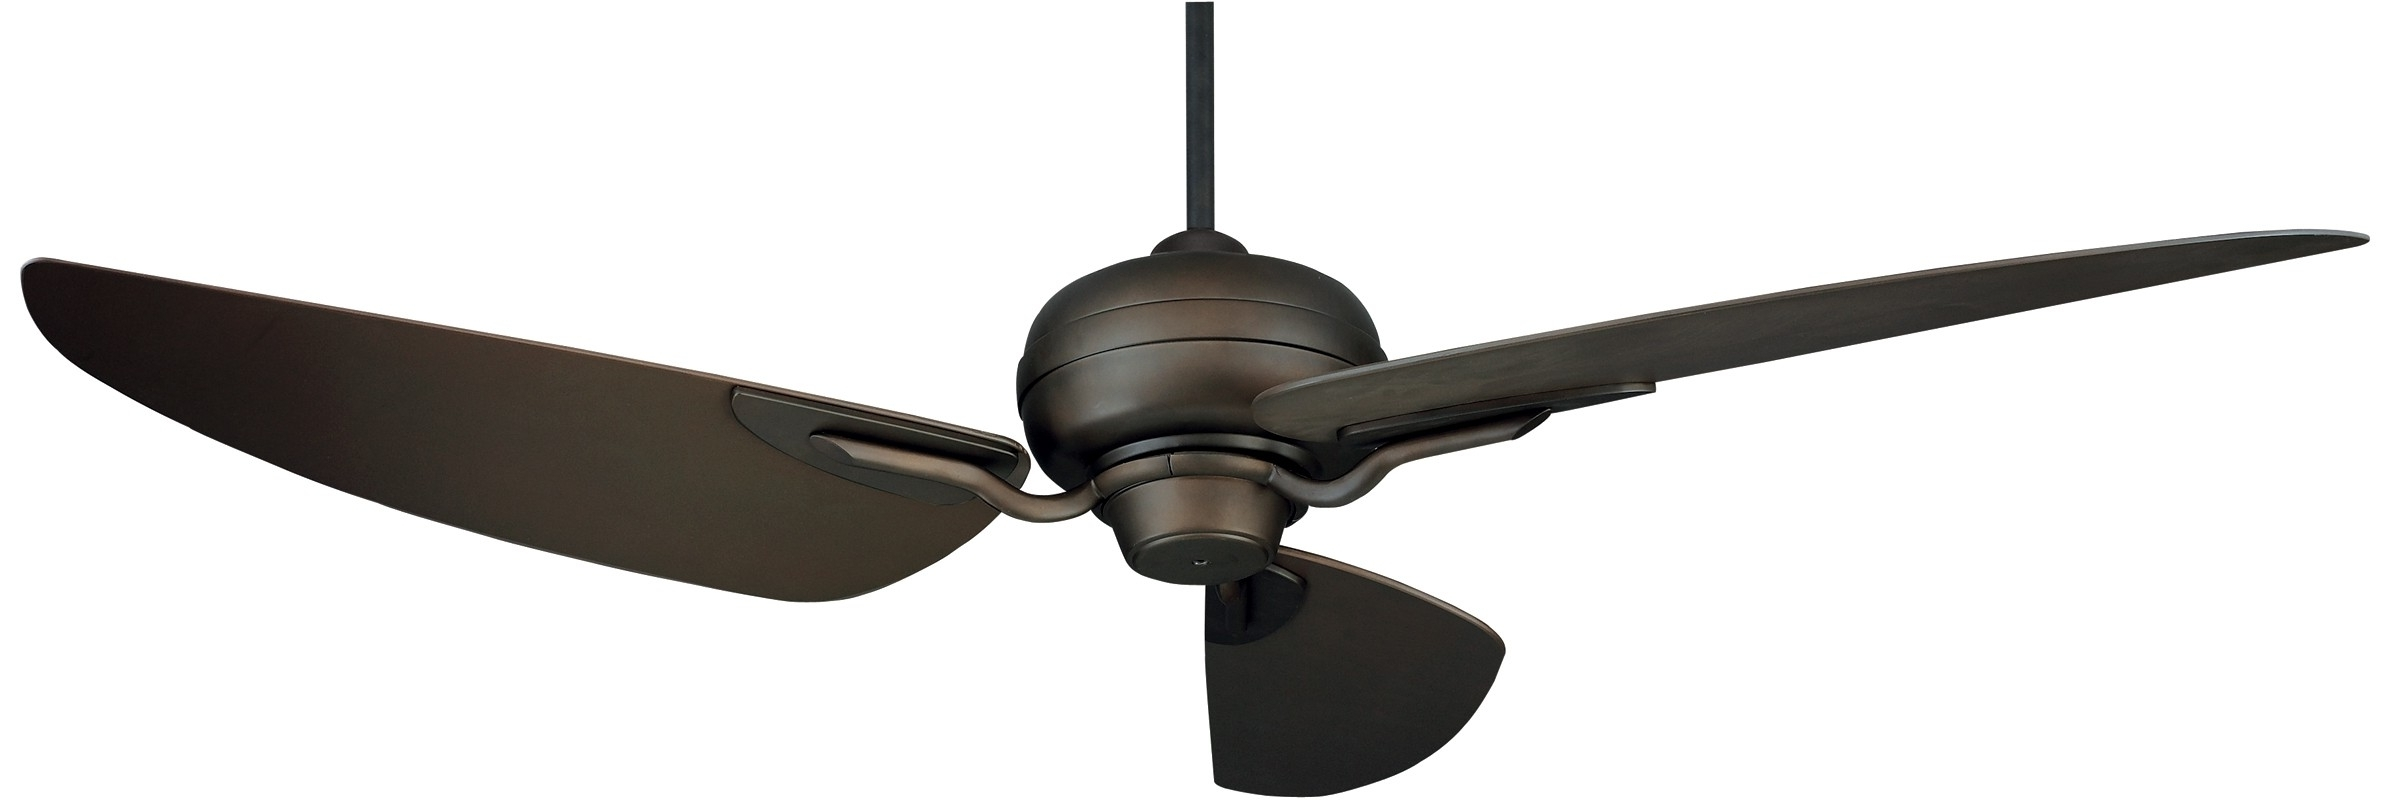 Most Recent Outdoor Ceiling Fans For Wet Locations Throughout Bimini (Wet Location), Best Outdoor Ceiling Fans – Cliff Drive (View 6 of 20)